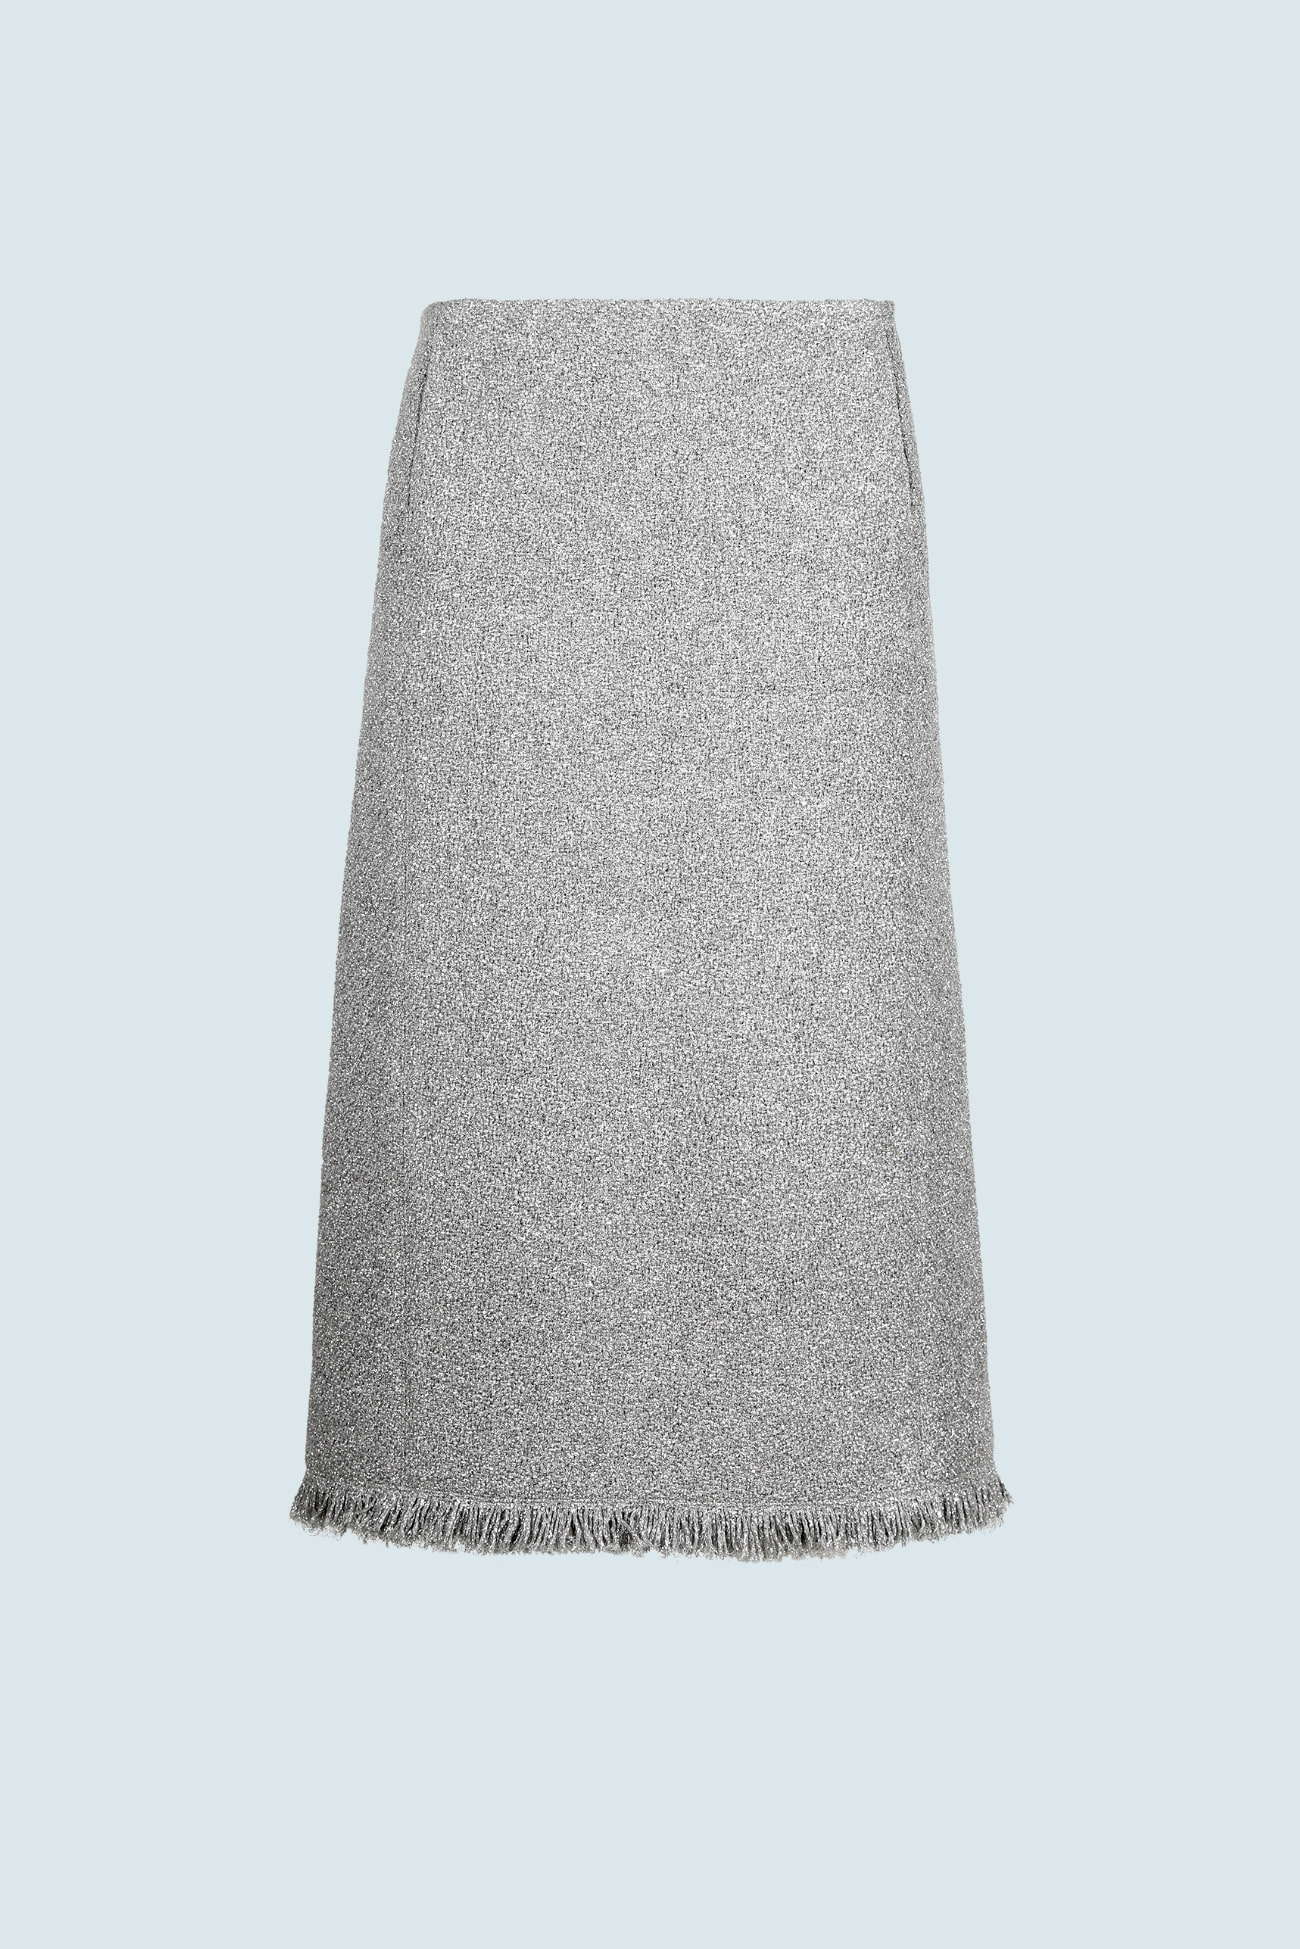 HIGH QUALITY LINE - SILVER SPECIAL TWEED SKIRT